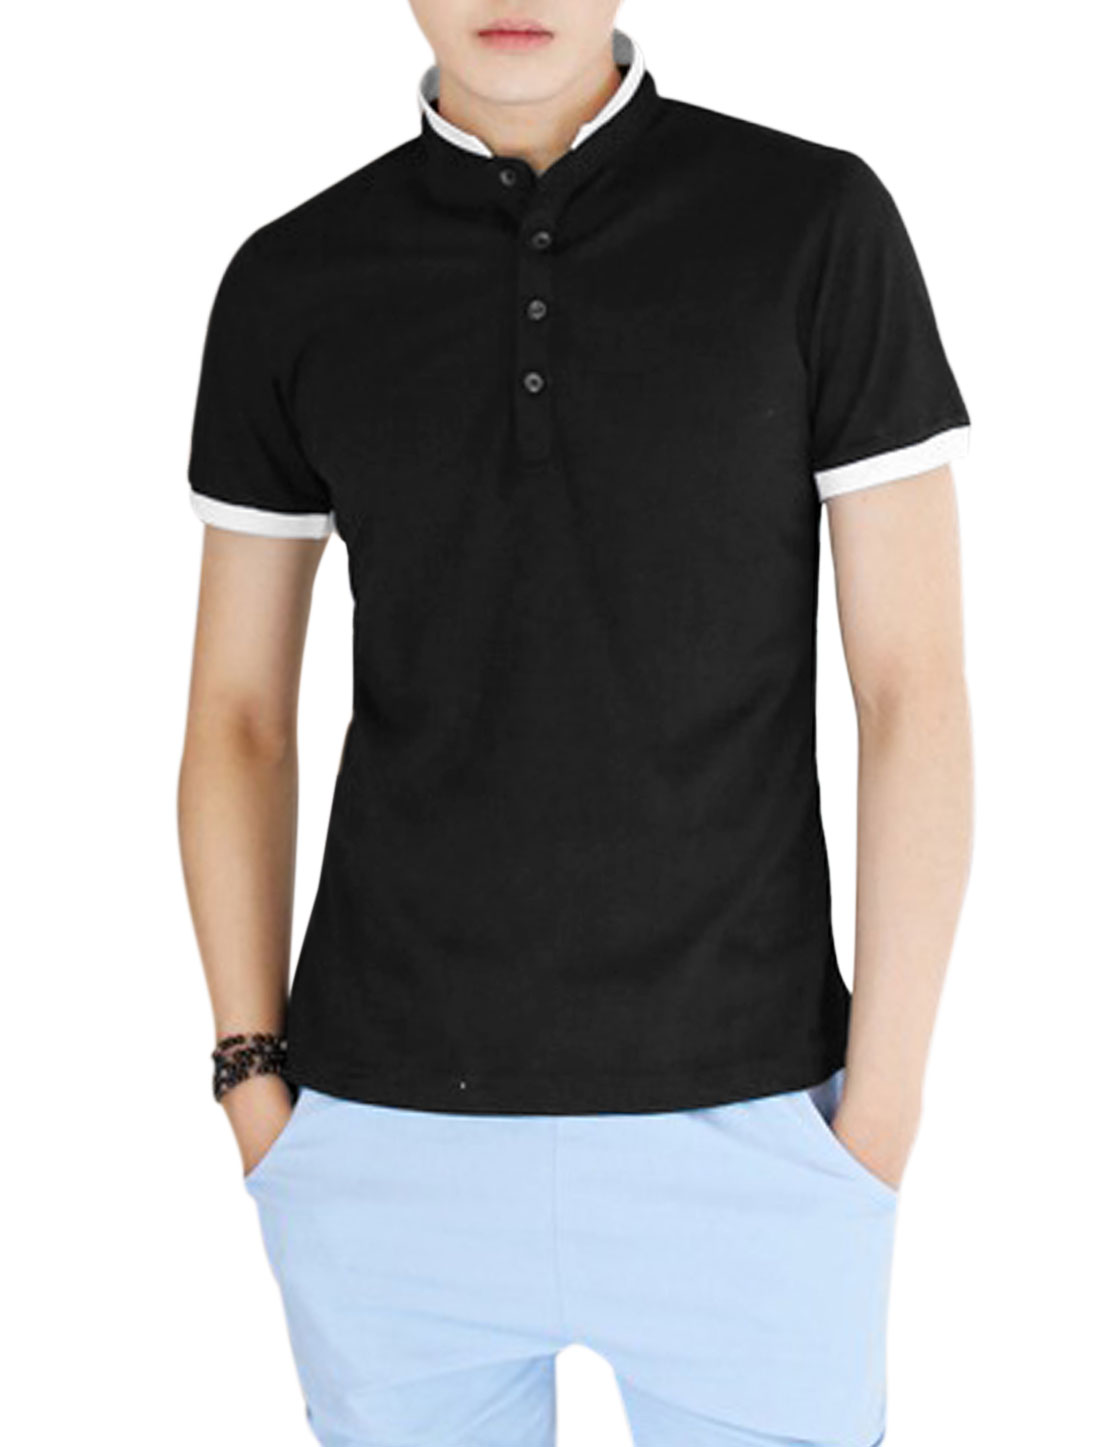 Man 3/4 Placket Convertible Collar Trendy Slim Polo Shirt Black S